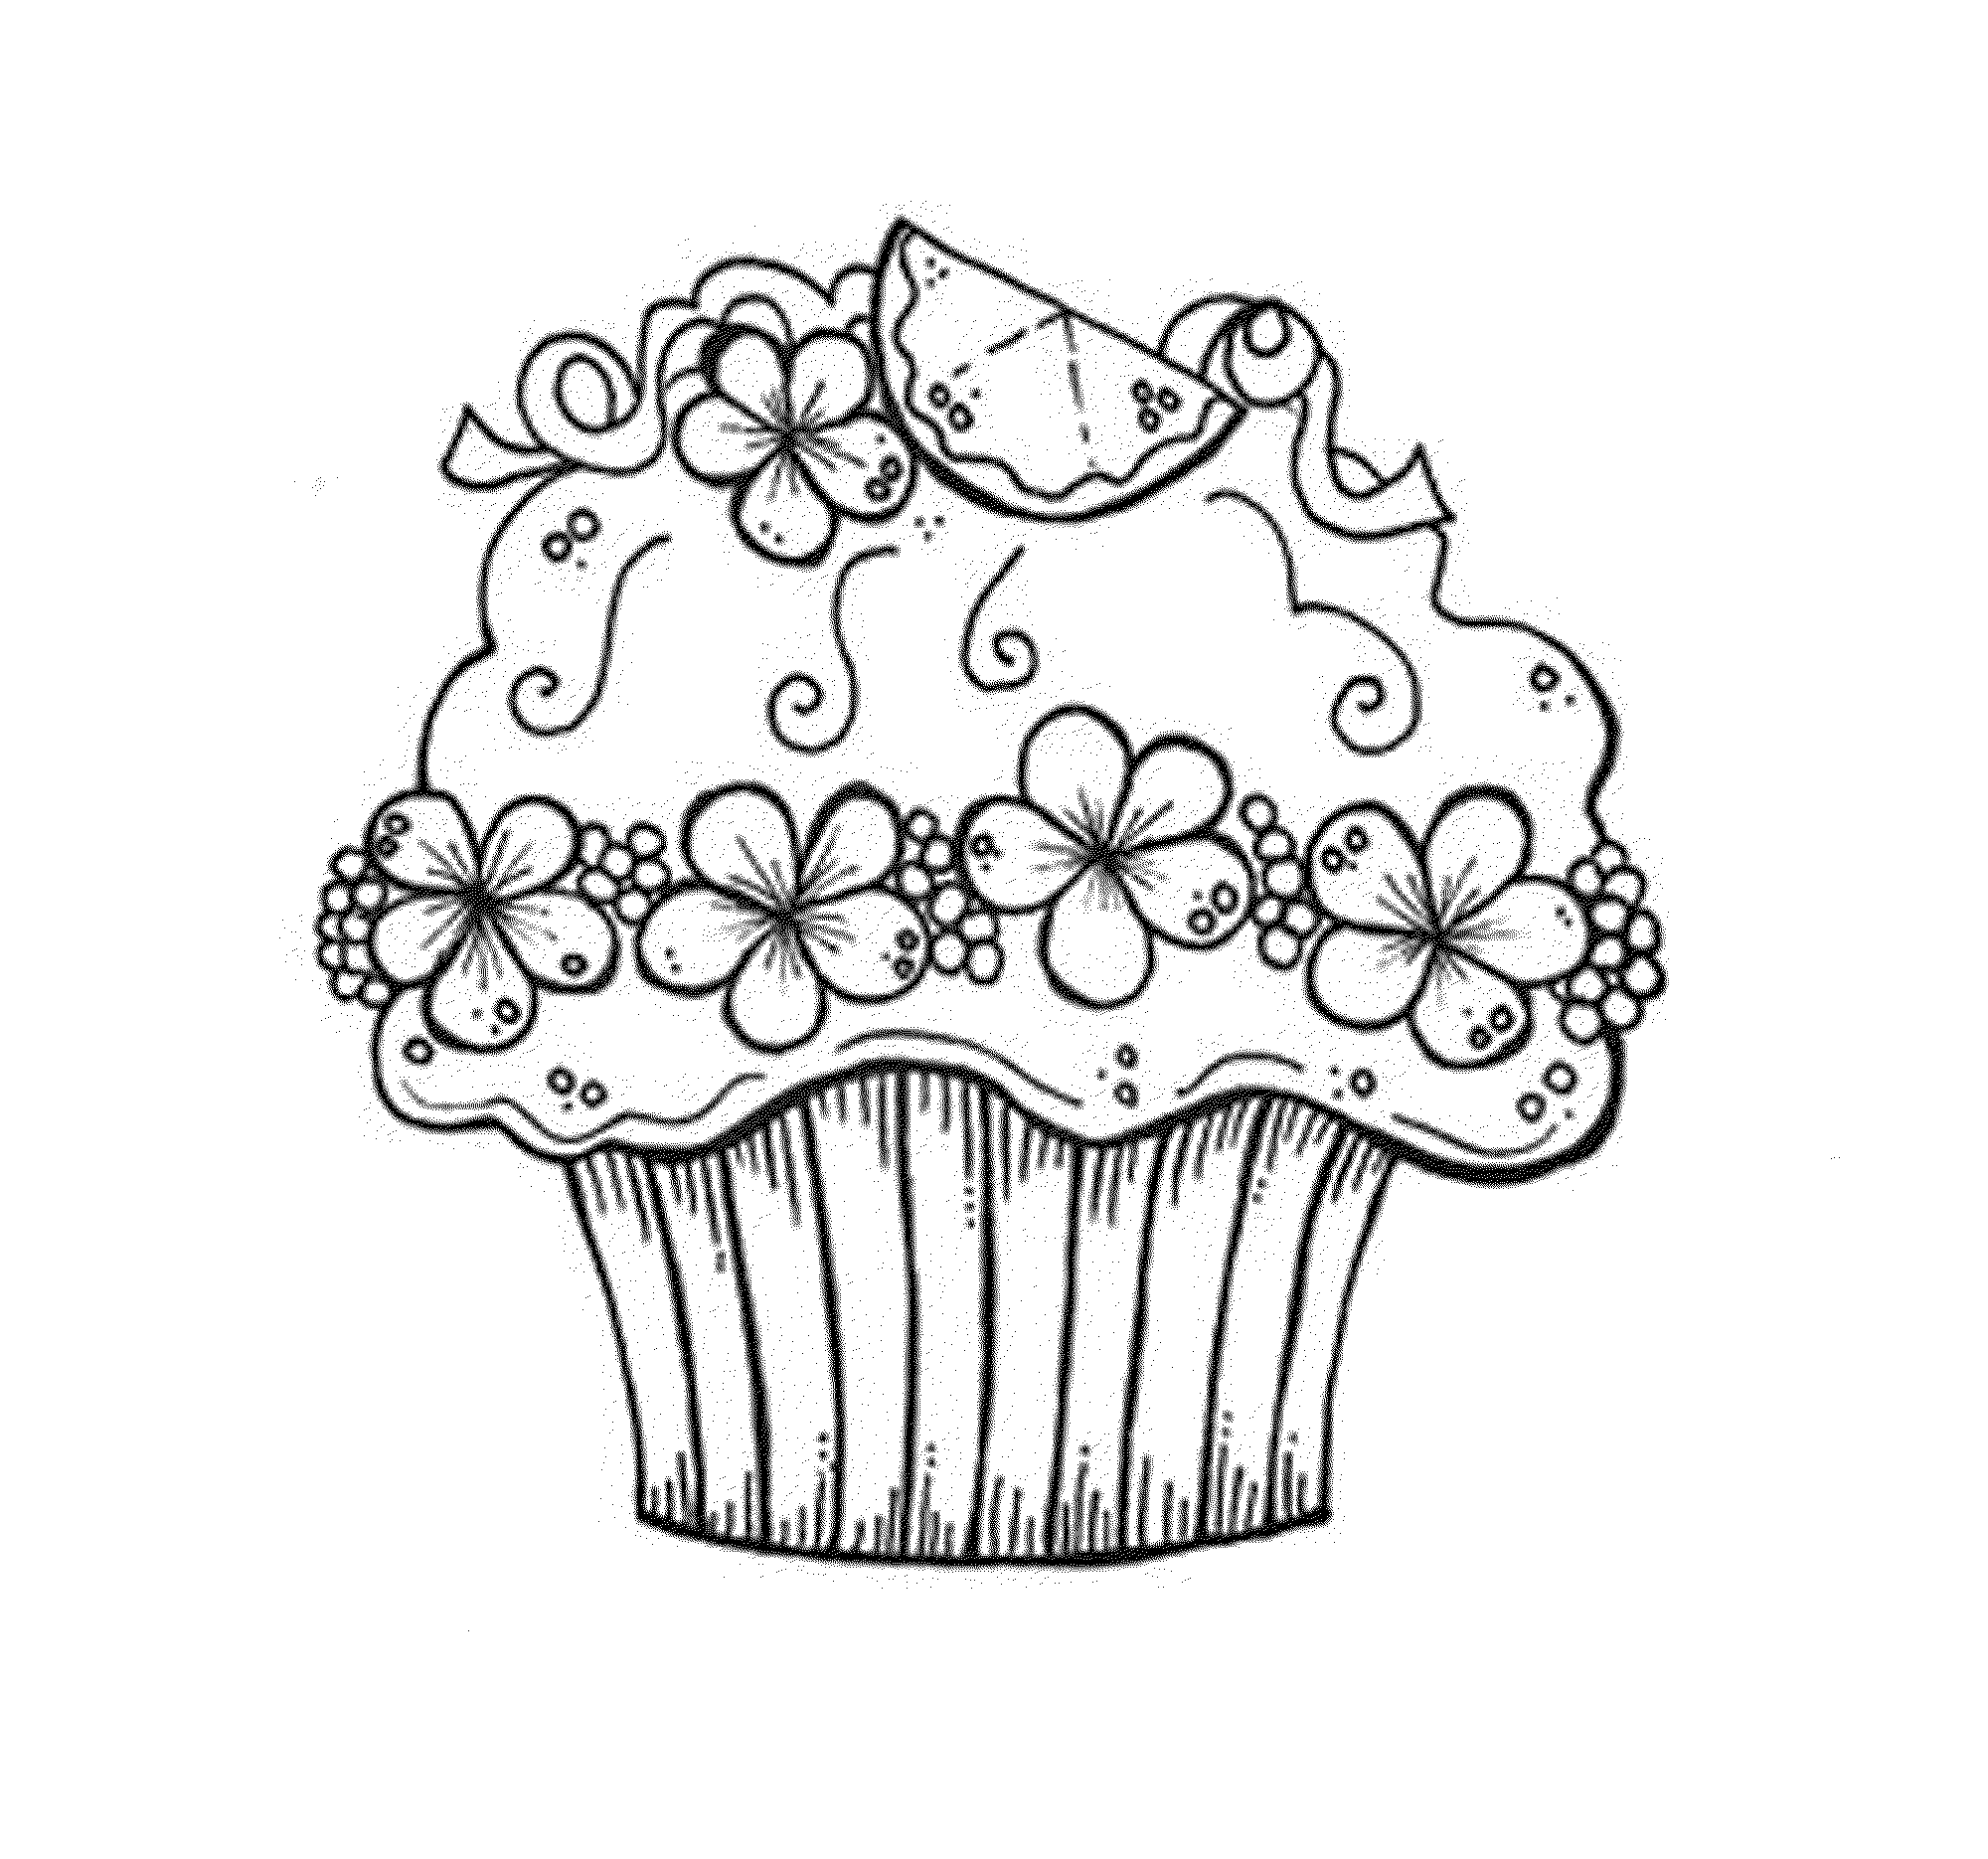 Free Printable Coloring Pages For Adults Easy Coloring And Drawing